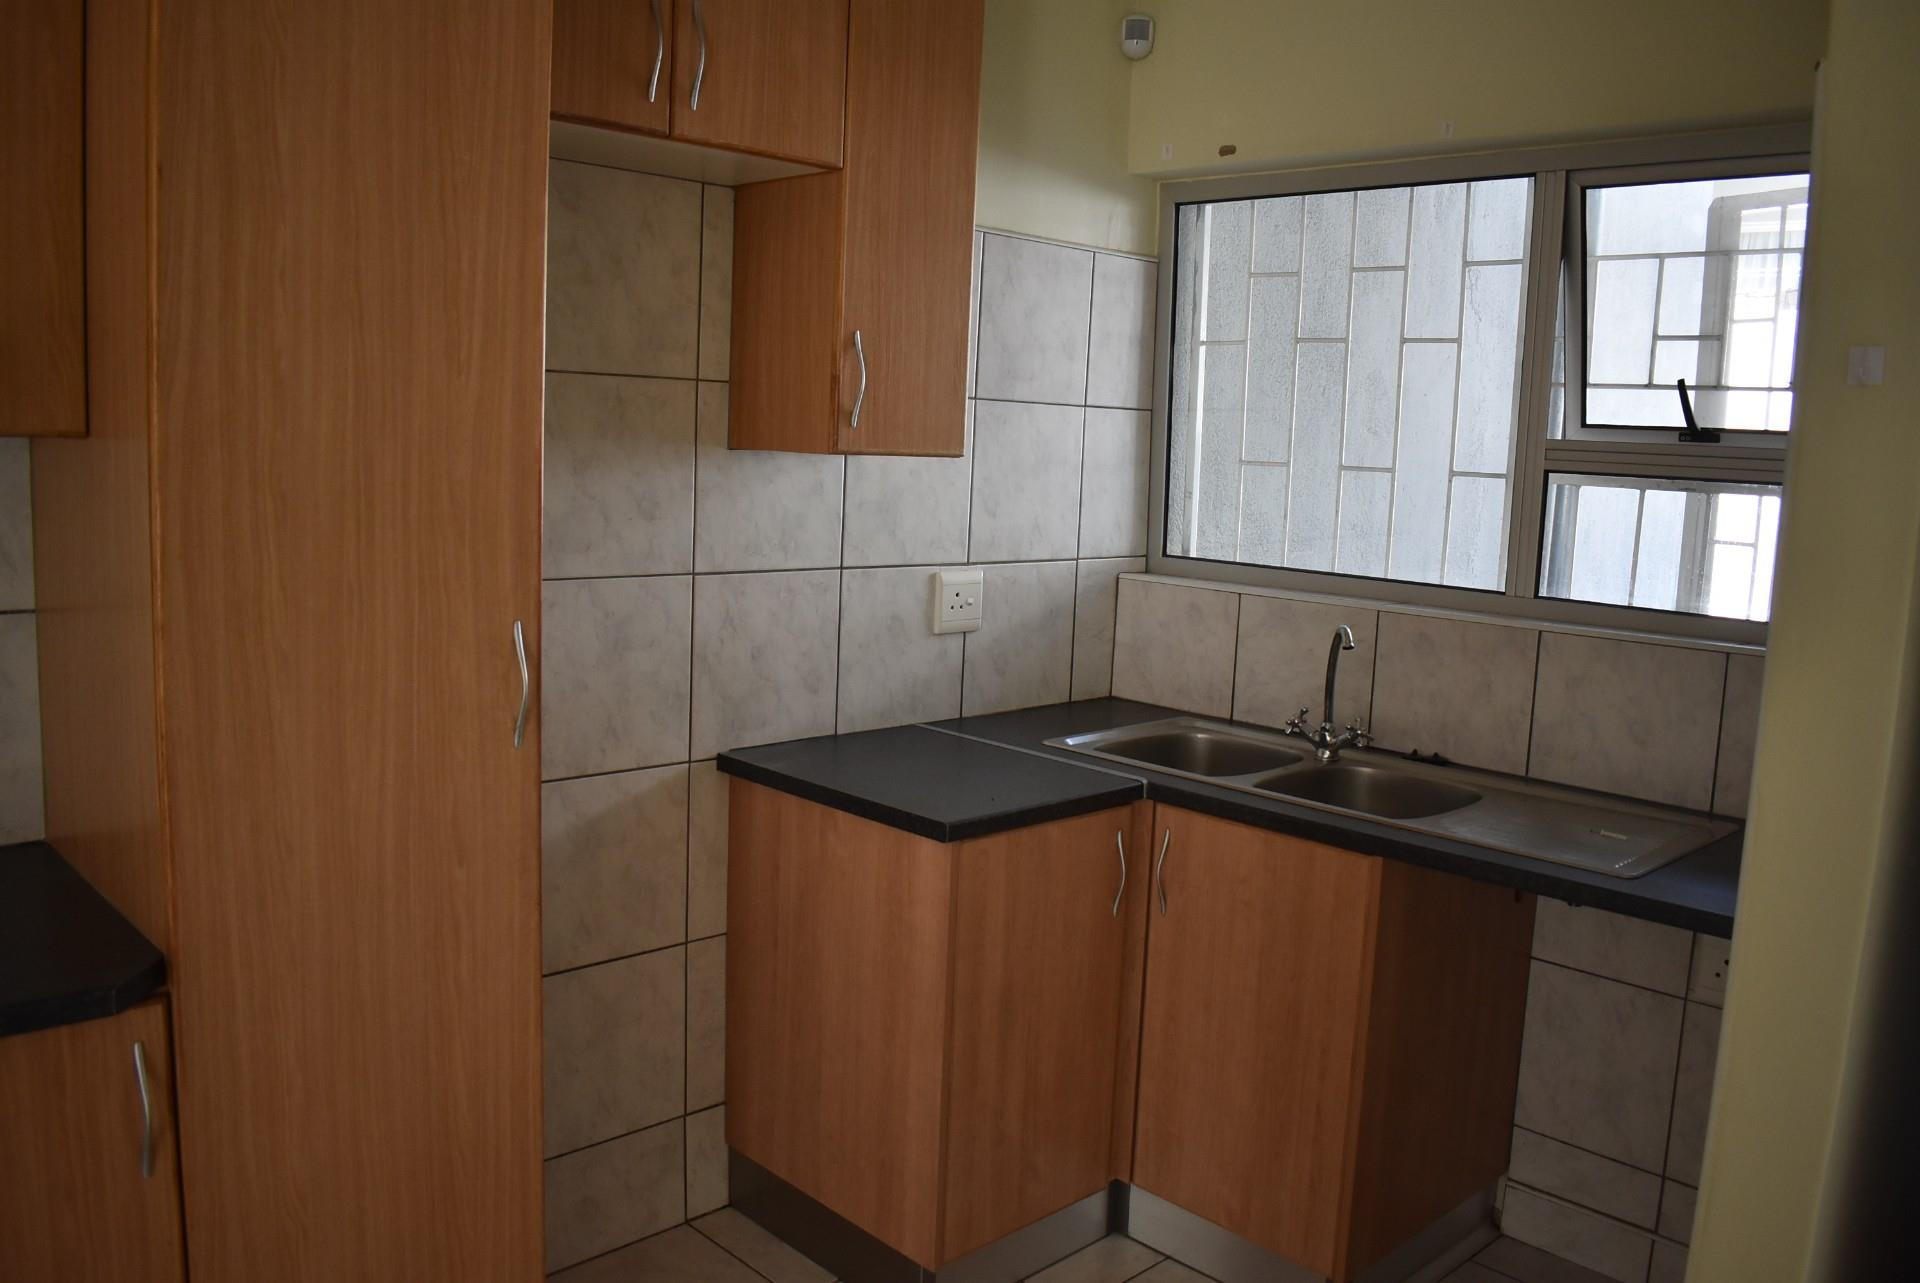 3 Bedroom House For Sale in Klein Windhoek